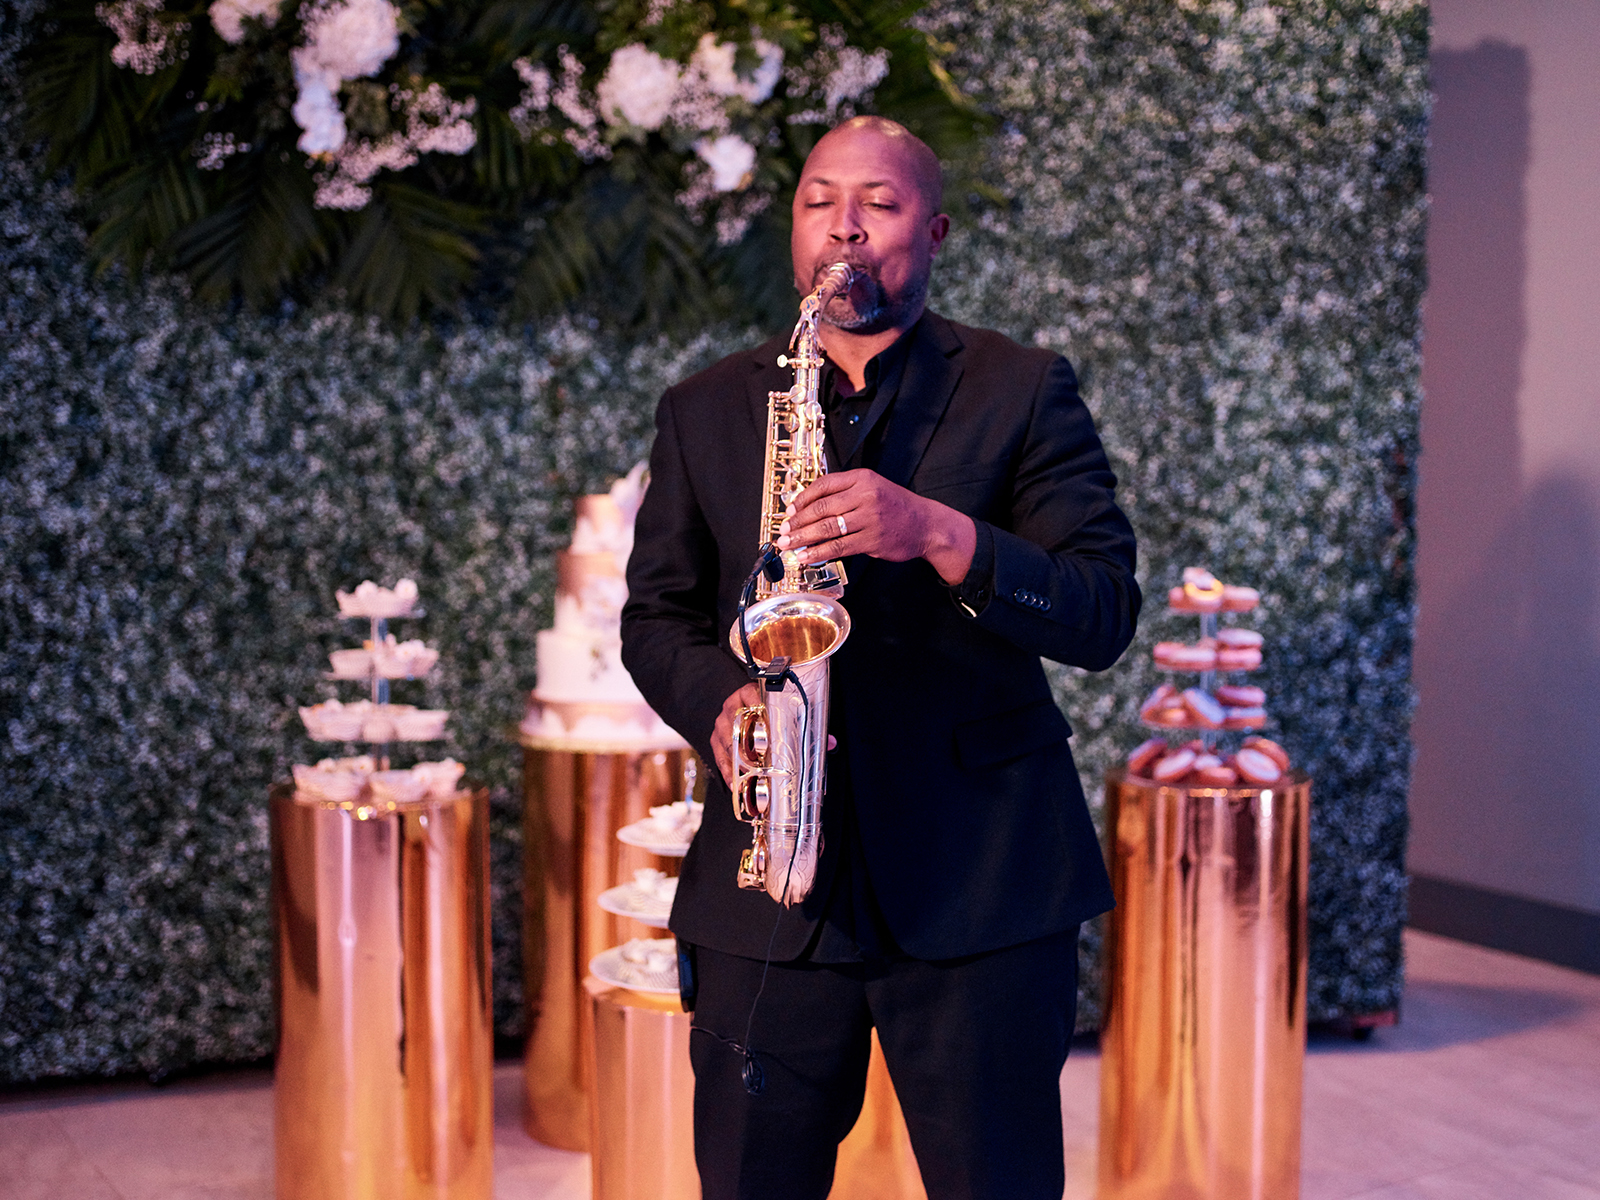 gold cake stands, ivy wall, saxophone at wedding